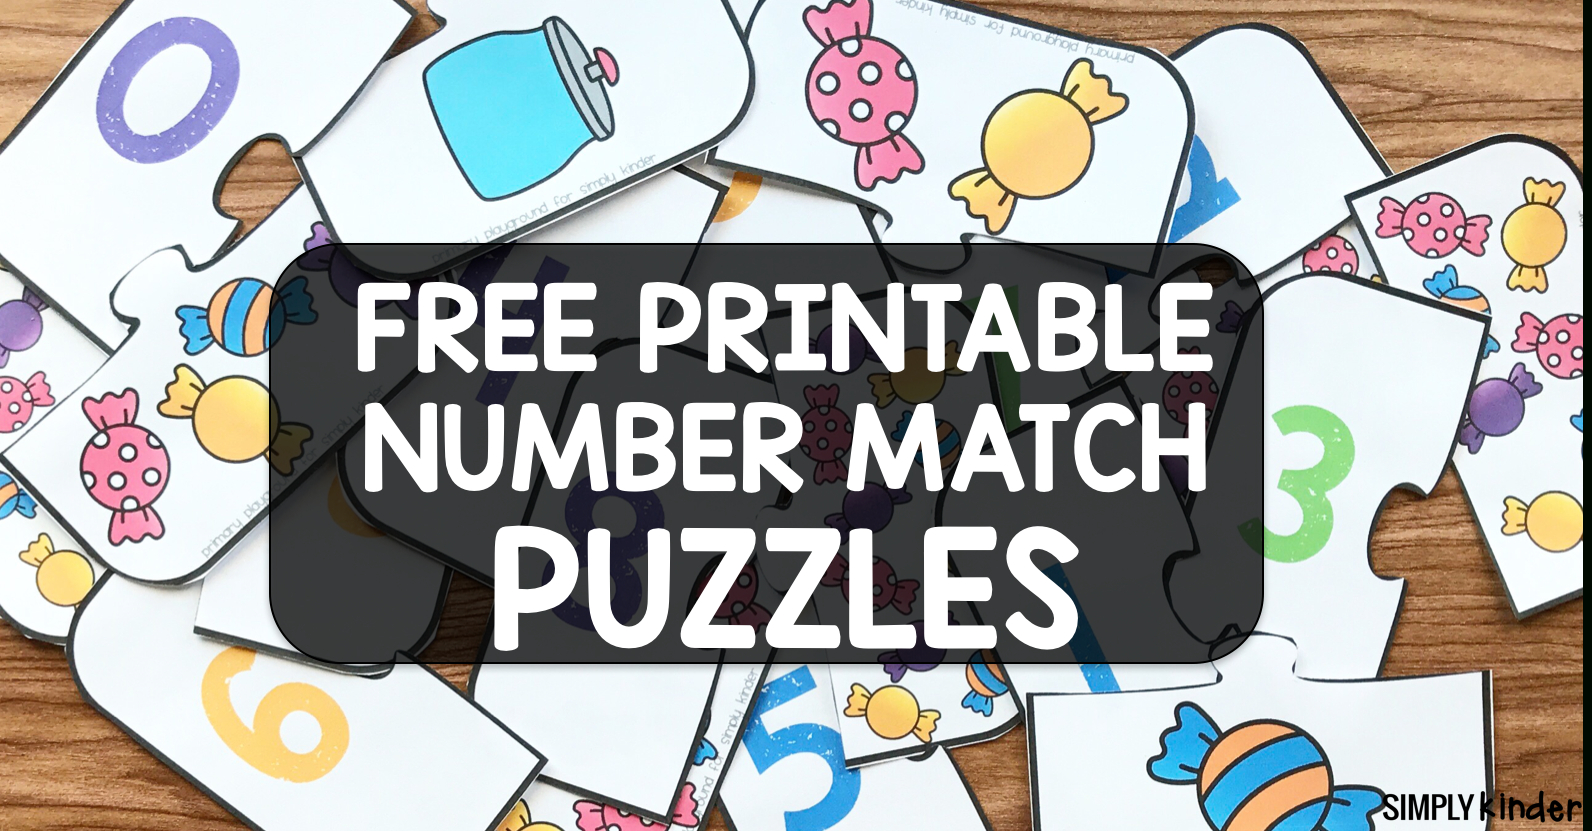 Free Printable Number Match Puzzles - Simply Kinder - Printable Matching Puzzle